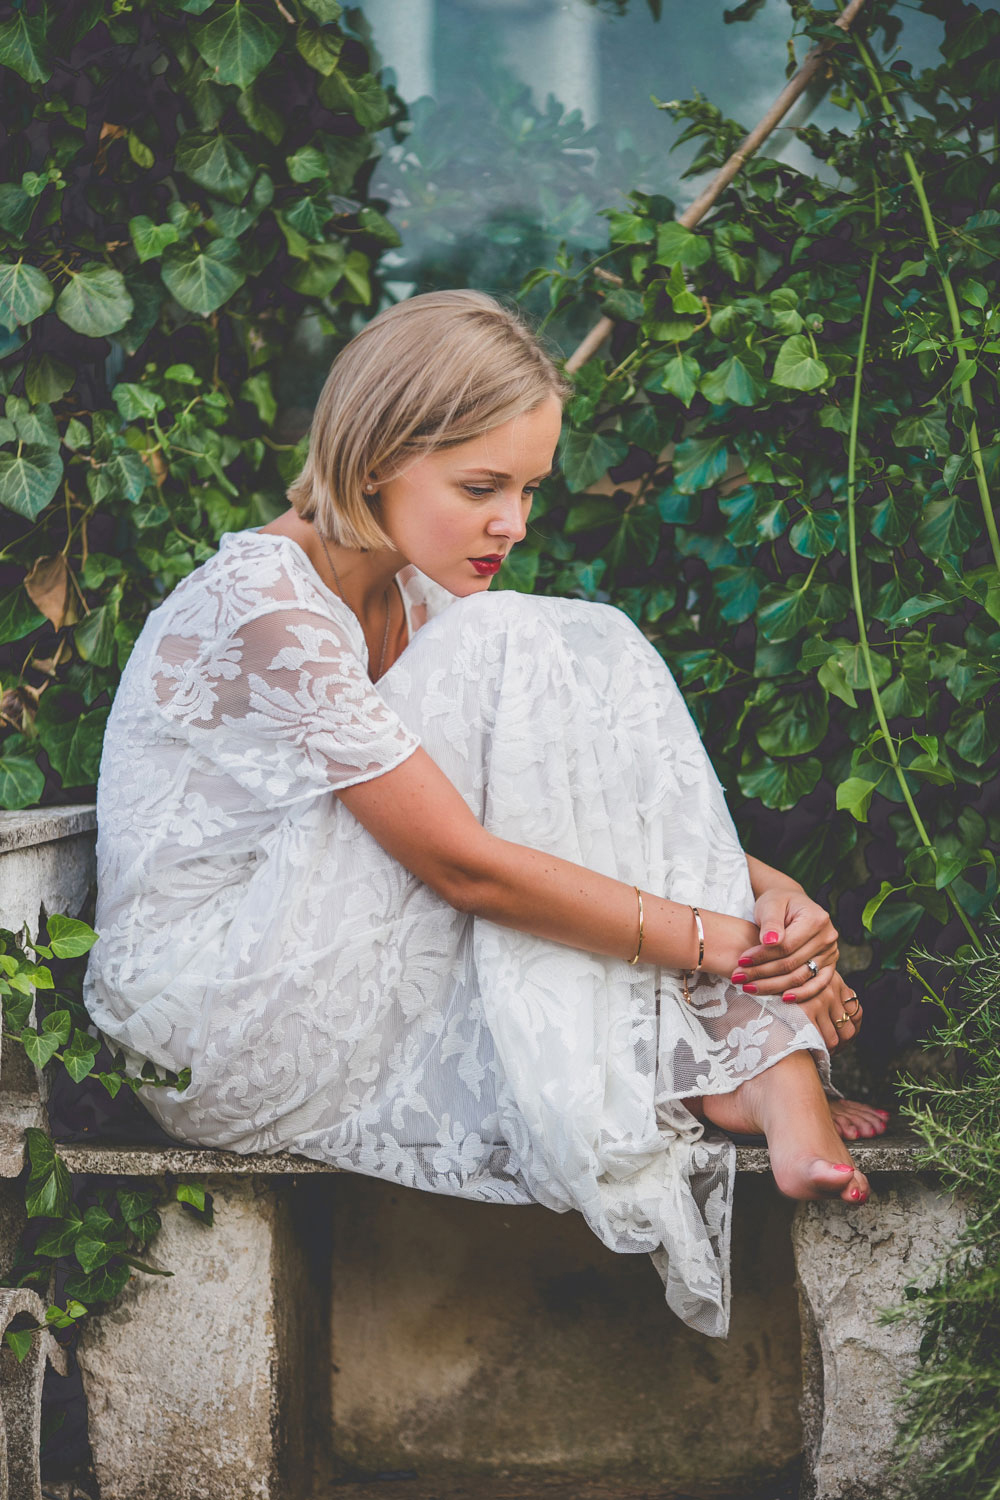 darya-kamalova-thecablook-fashion-lifestyle-blogger-from-thecablook-com-in-agri-trulli-in-puglia-south-italy-wearing-gat-rimon-white-maxi-lace-dress-4128